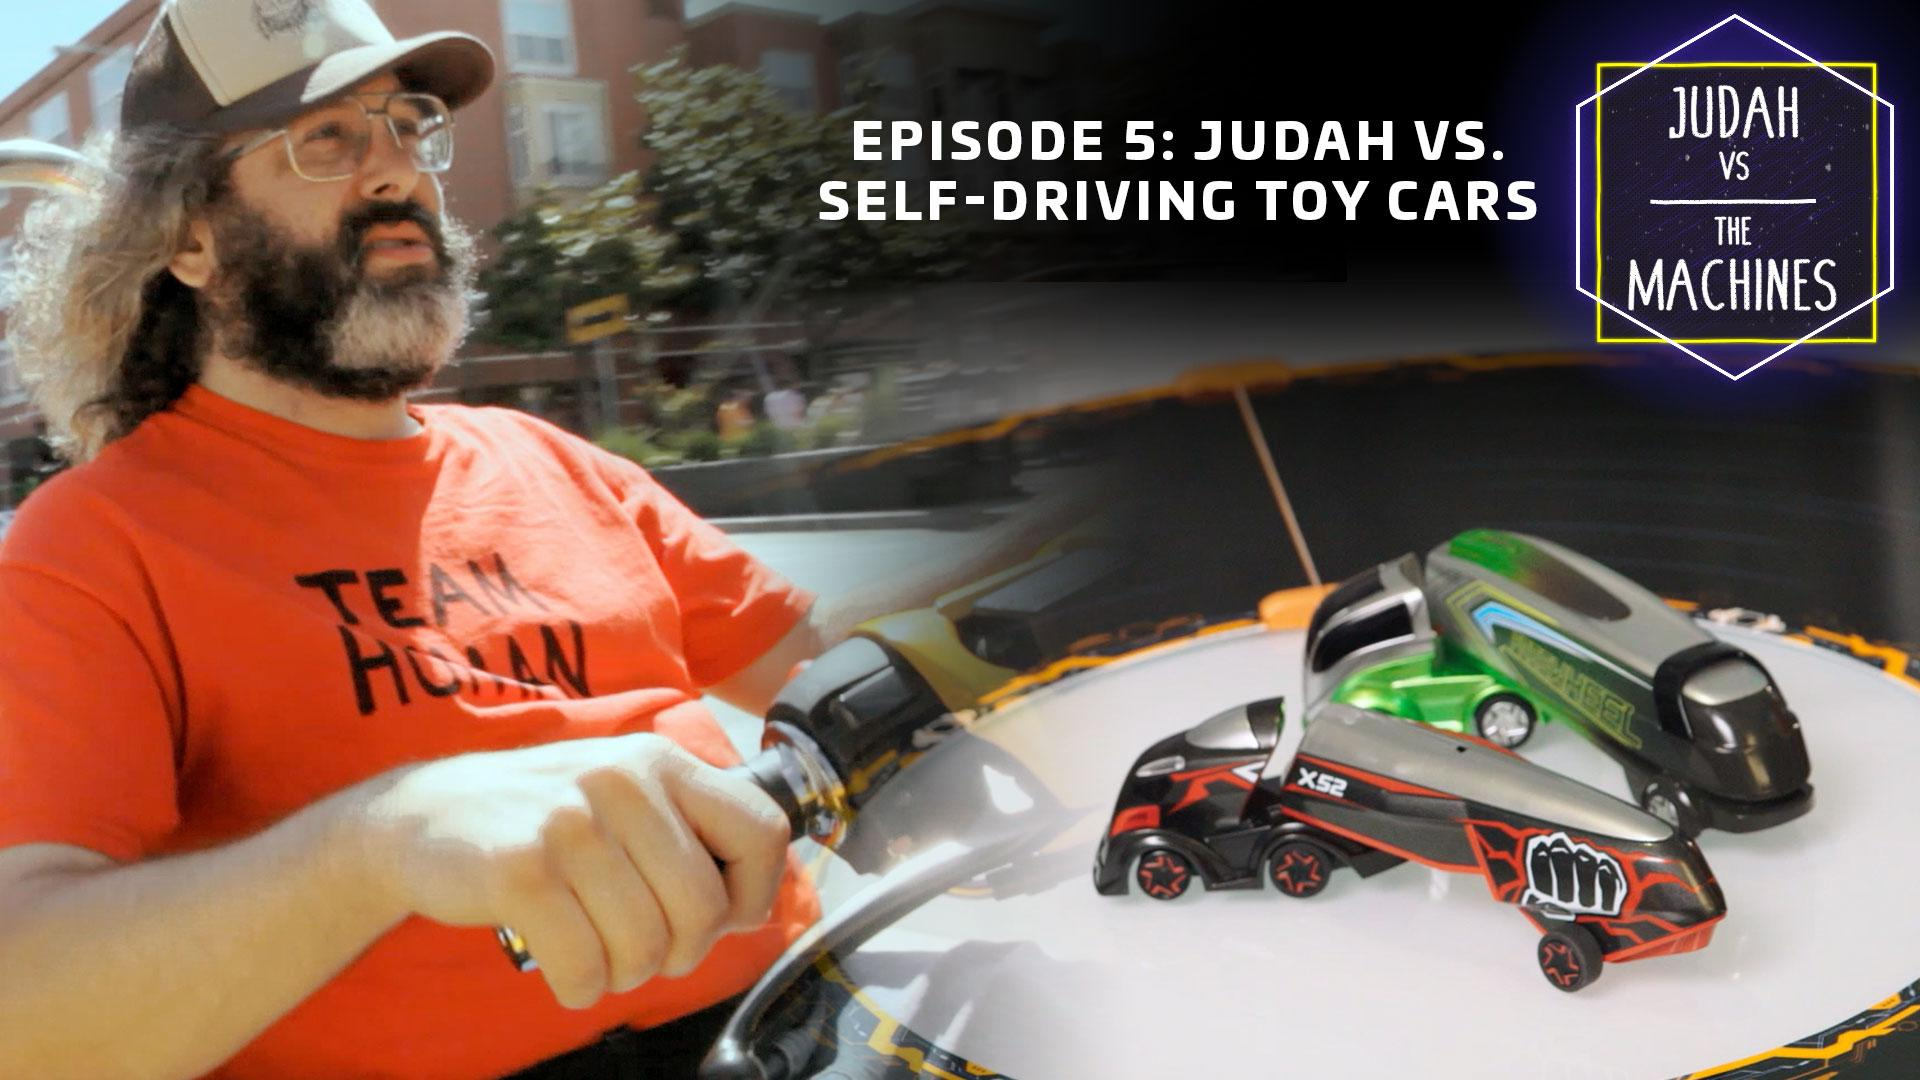 Judah Vs. The Machines: The race for prowess against a toy car